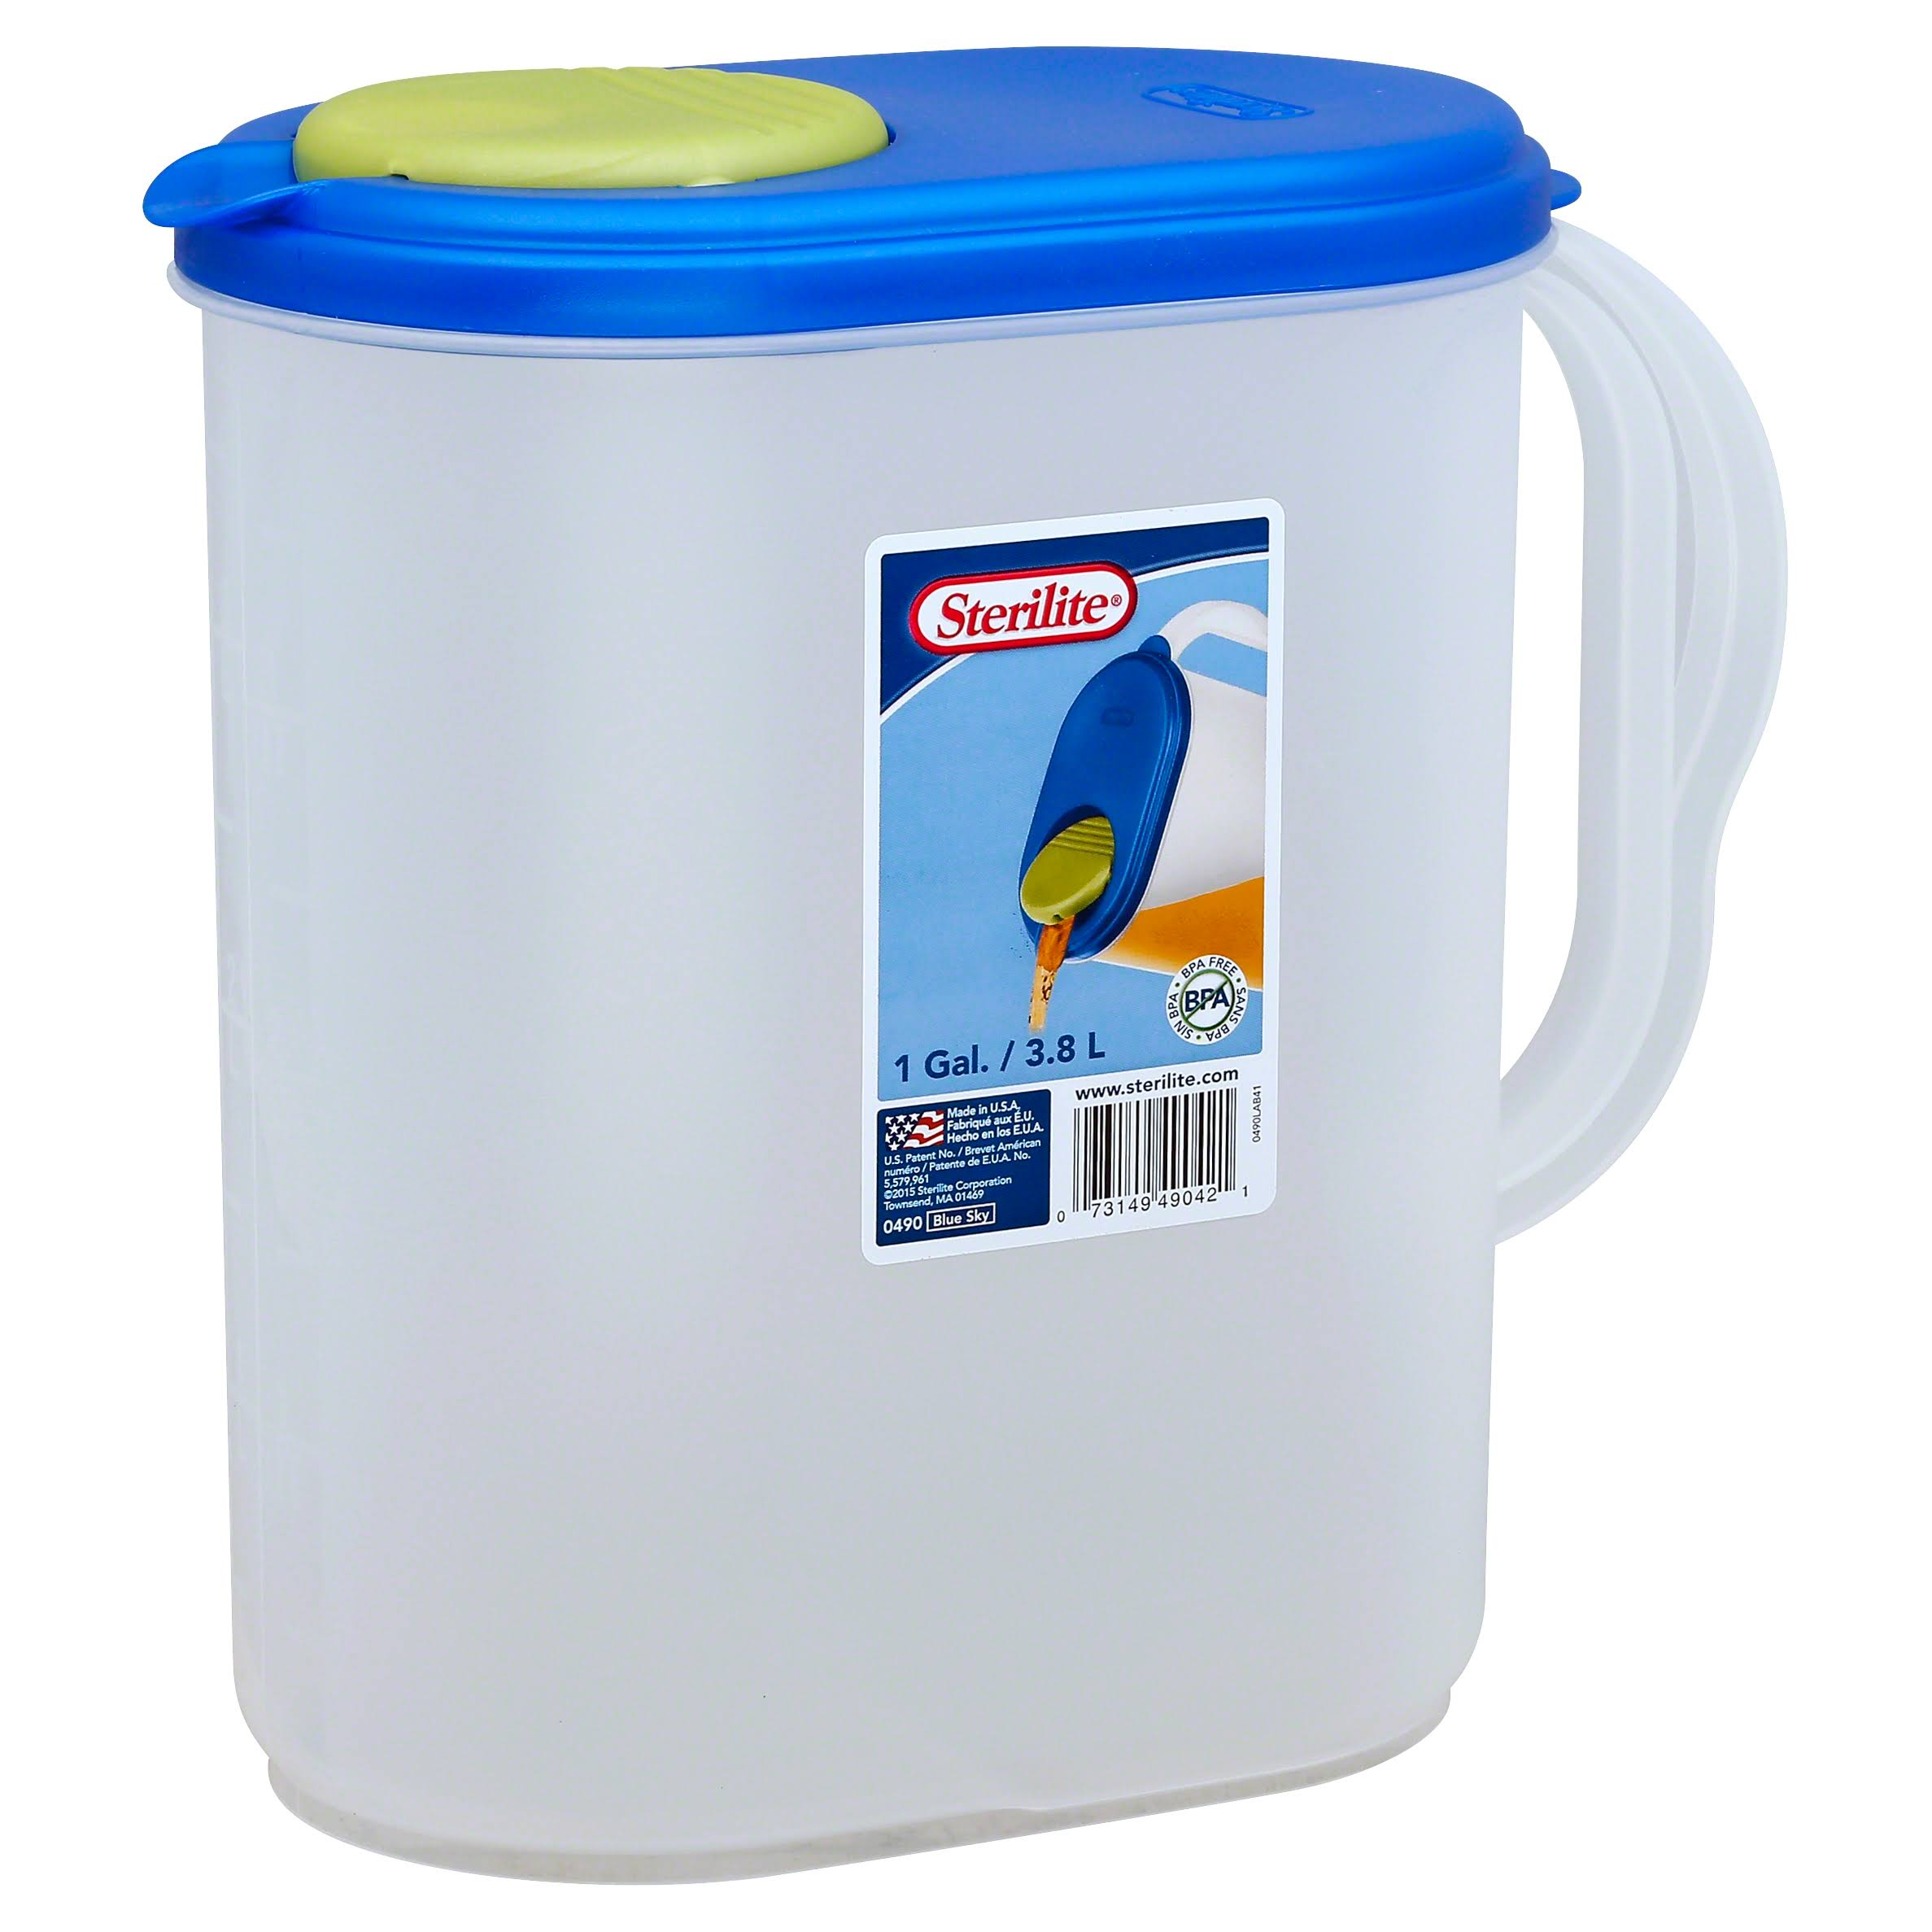 Ultra Seal Sterilite Pitcher - 1gal, 3pk